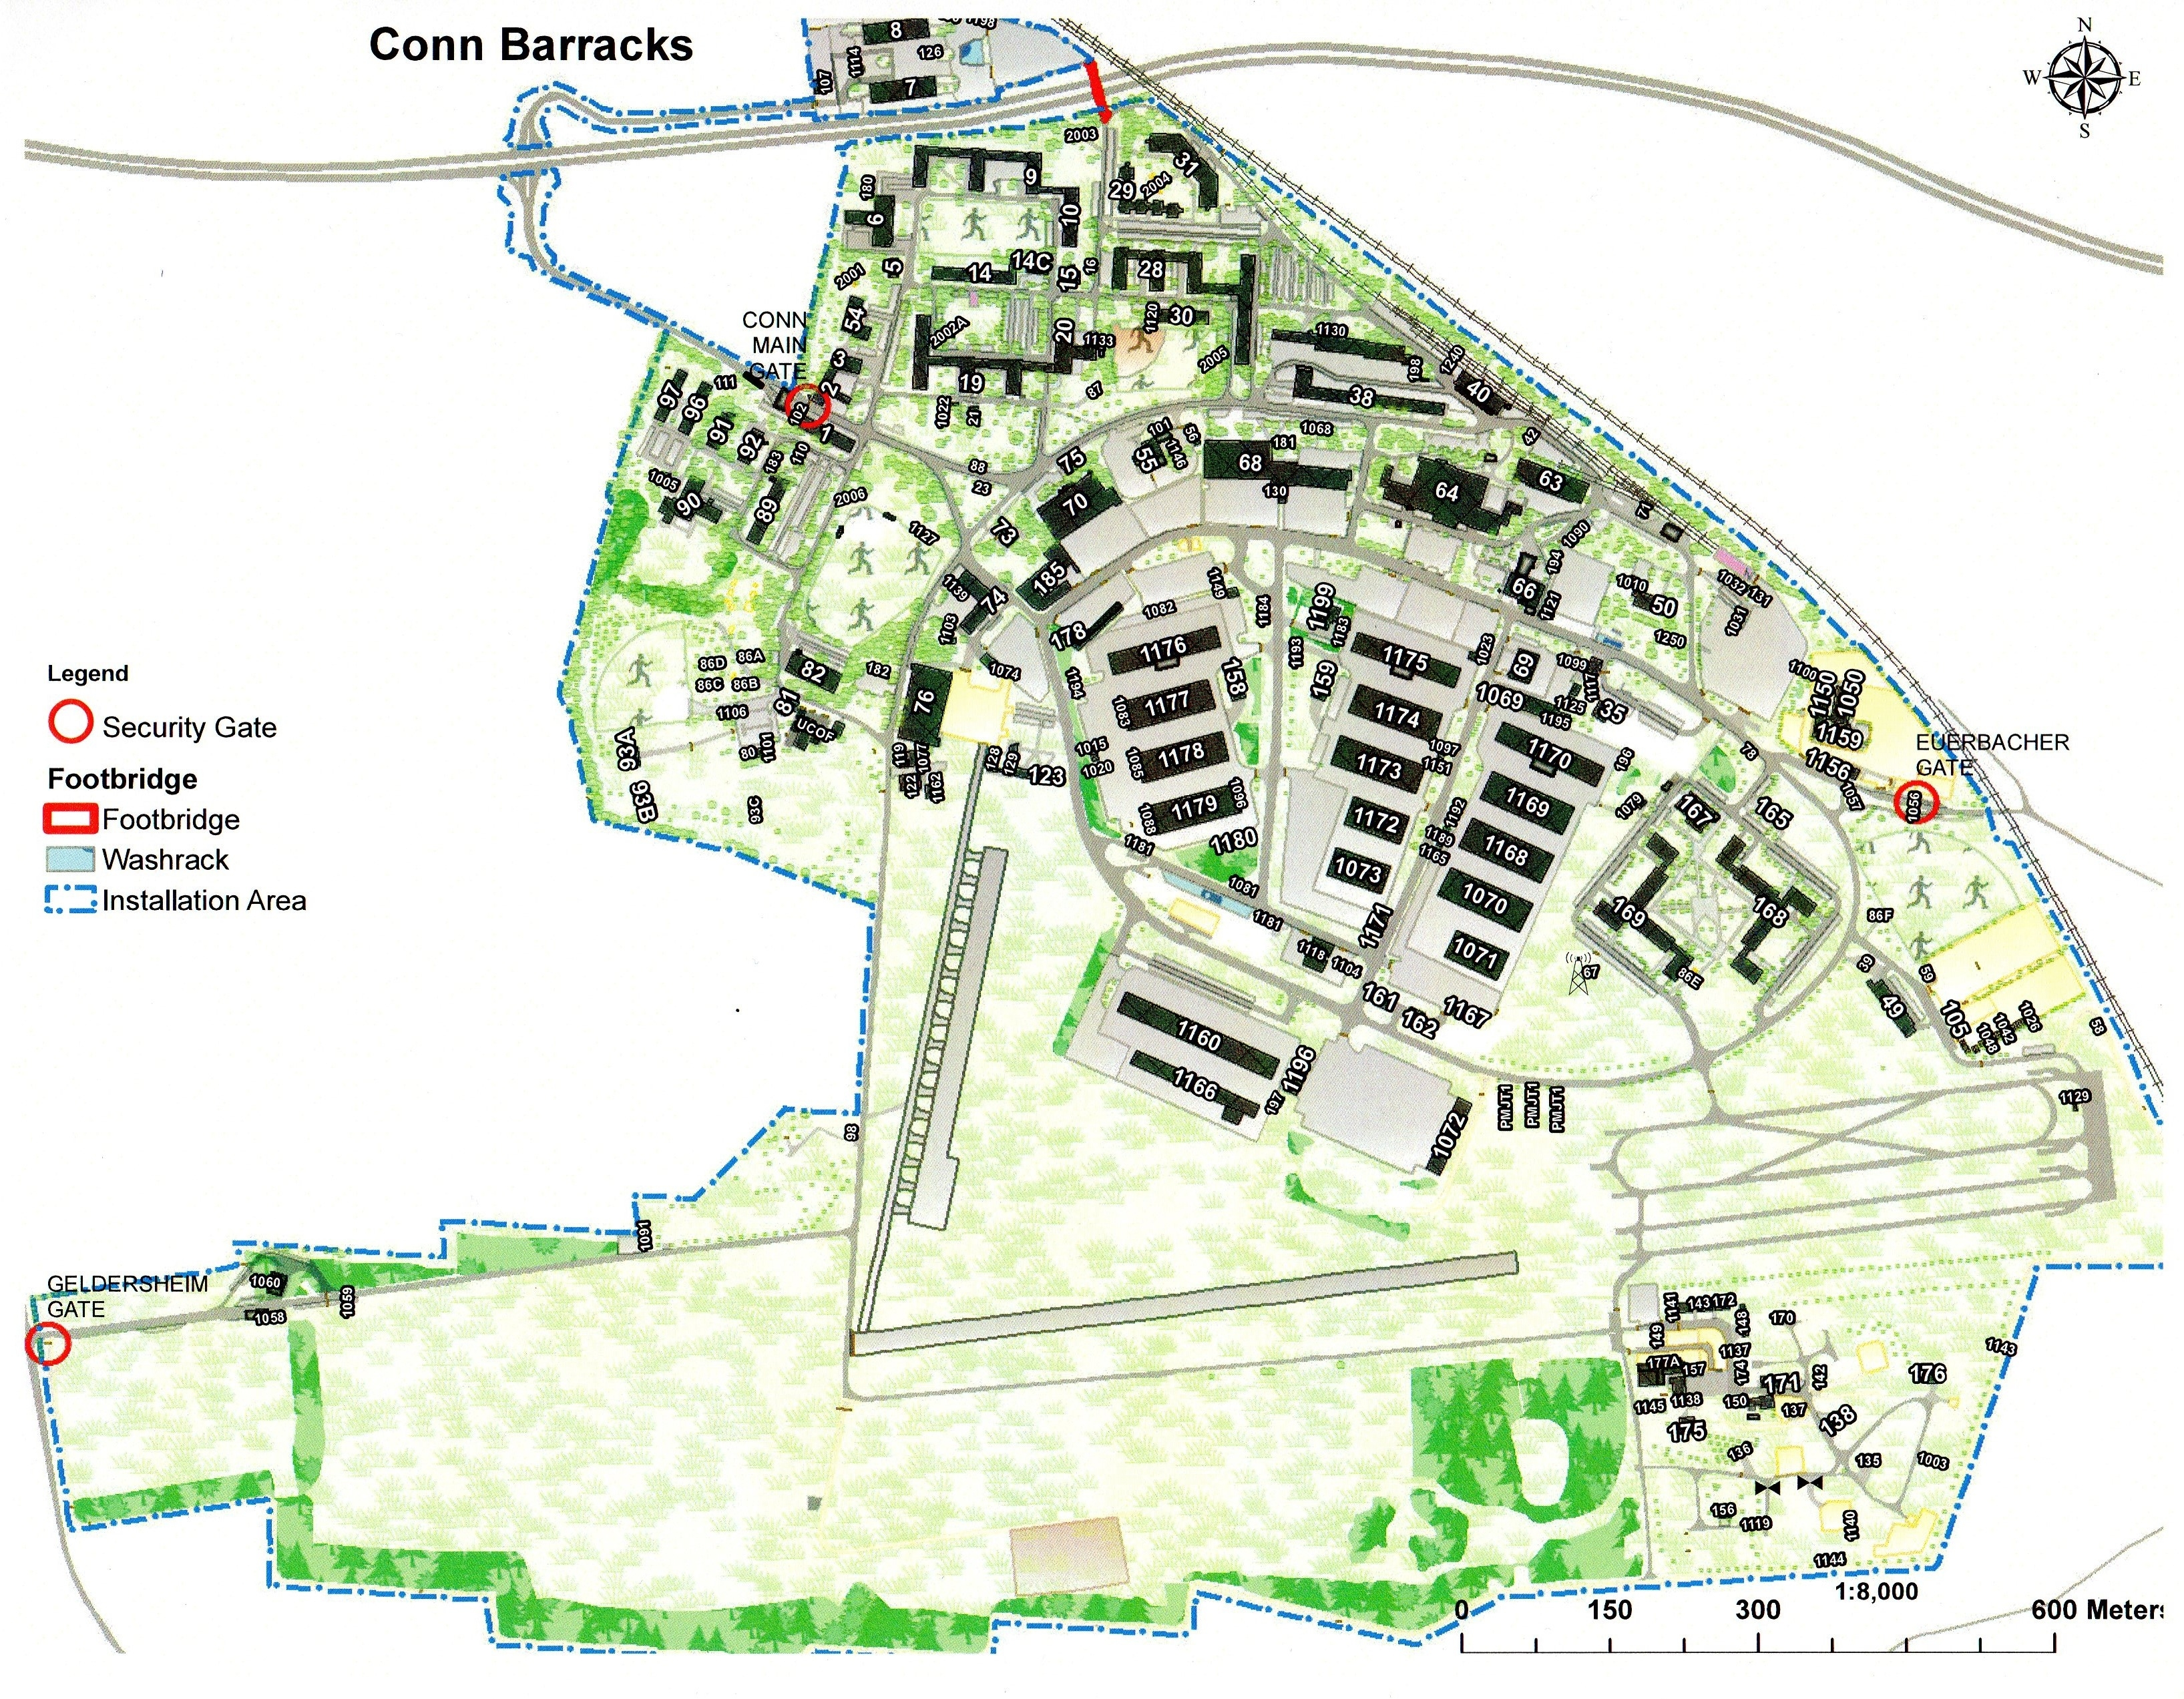 Conn Barracks intended for Army Bases In Germany Map